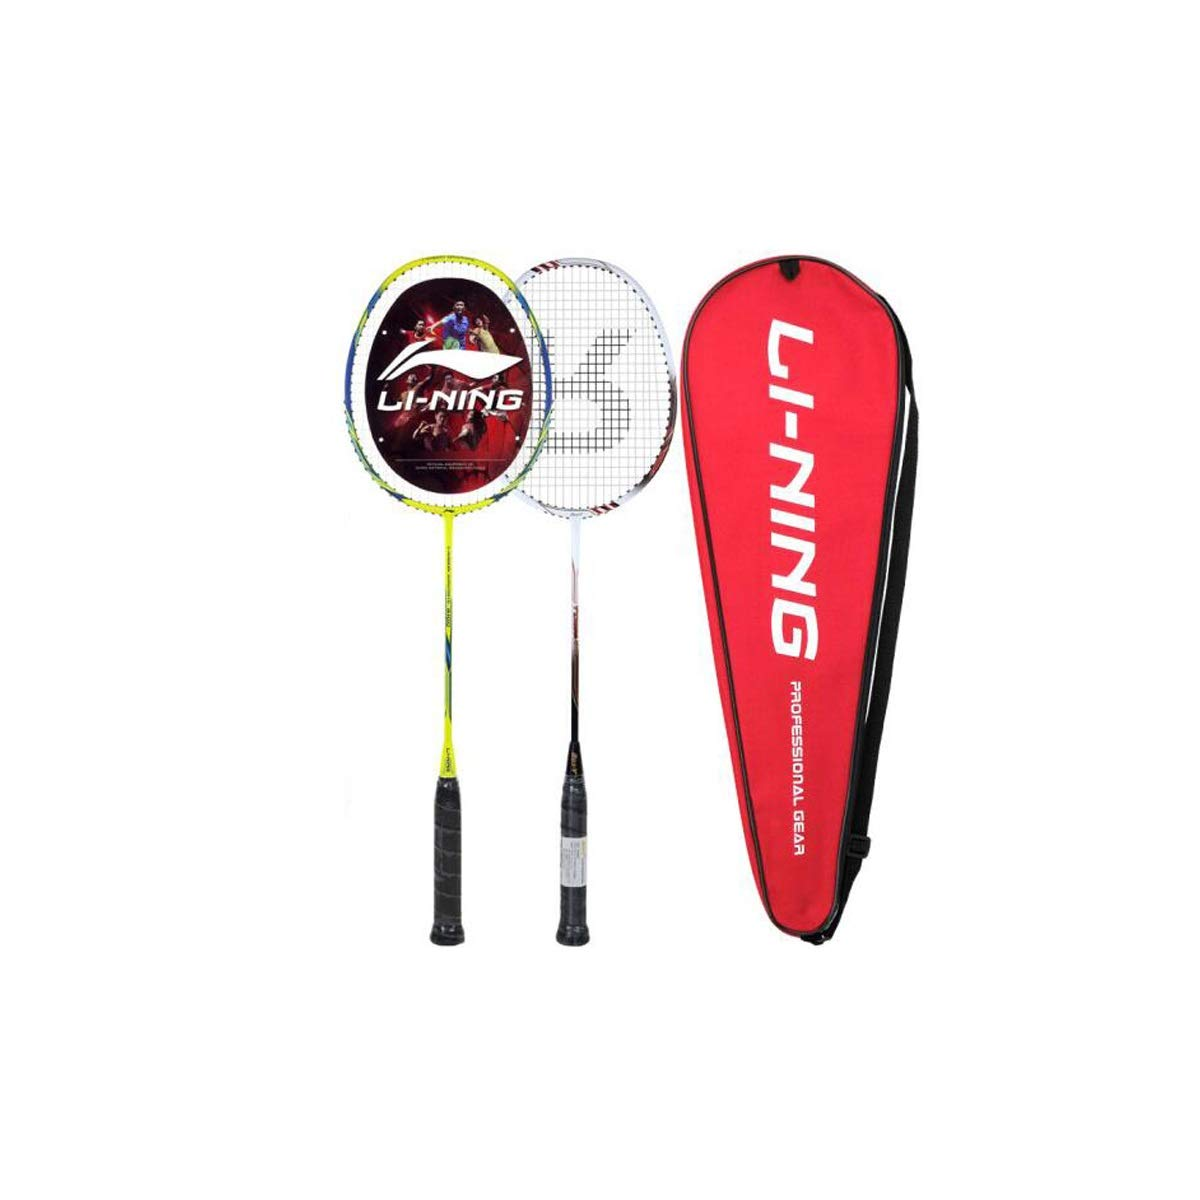 Tongboshi Full Carbon Badminton Racket, On The Beat, 2 Double Shot Set Ultra Light Beginner, Competition, Training, White, Yellow, White + Yellow (has Threaded) Badminton Racket, (Color : Yellow) by Tongboshi (Image #1)